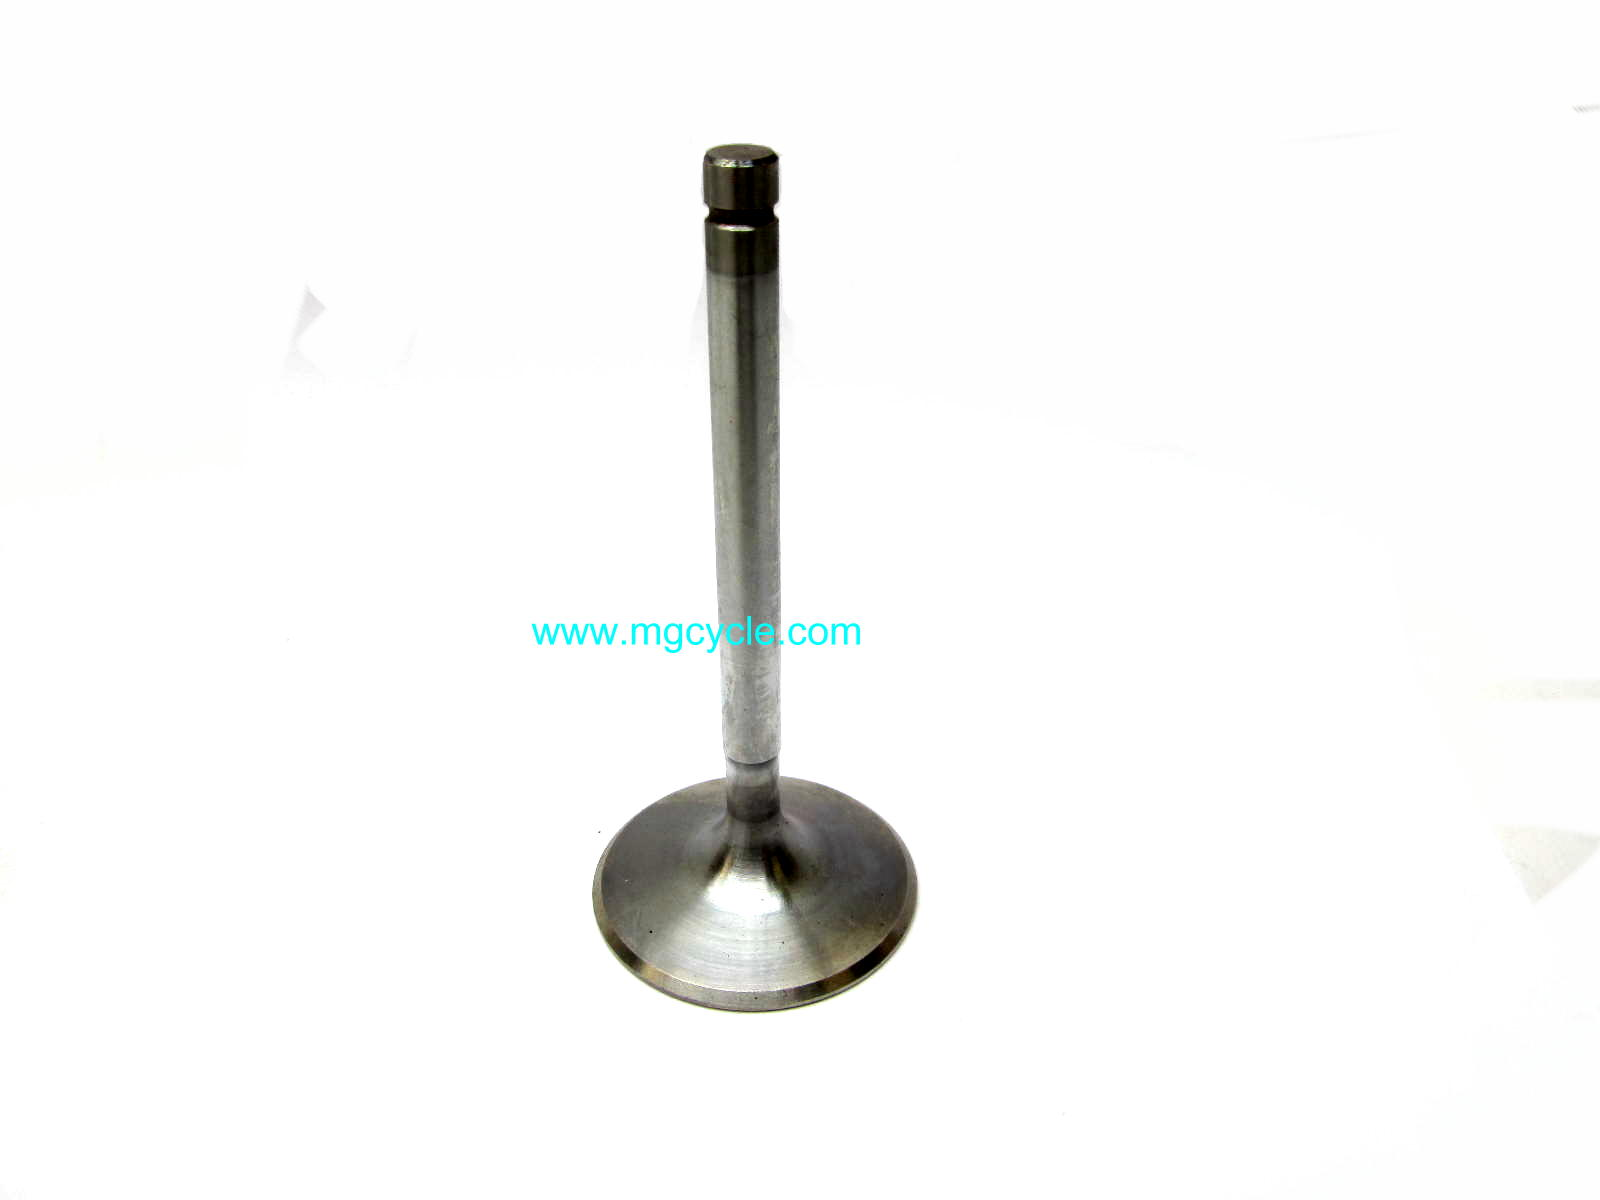 Intake valve 47mm for big valve engines LeMans 1000, 1000S